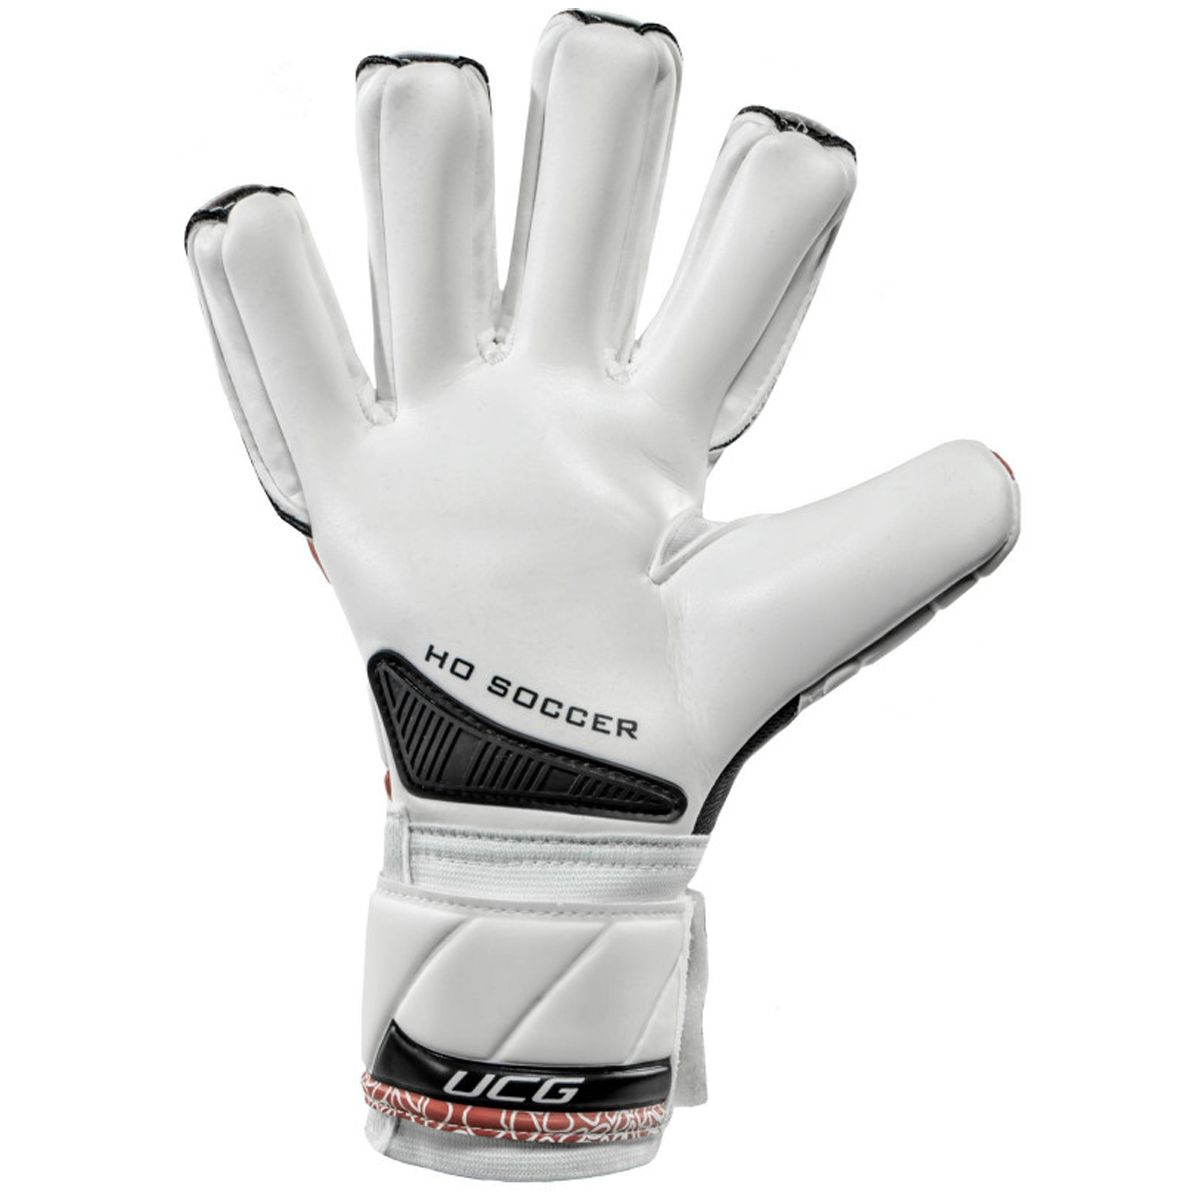 Luva Goleiro HO Soccer One Negative Intense Red 9132